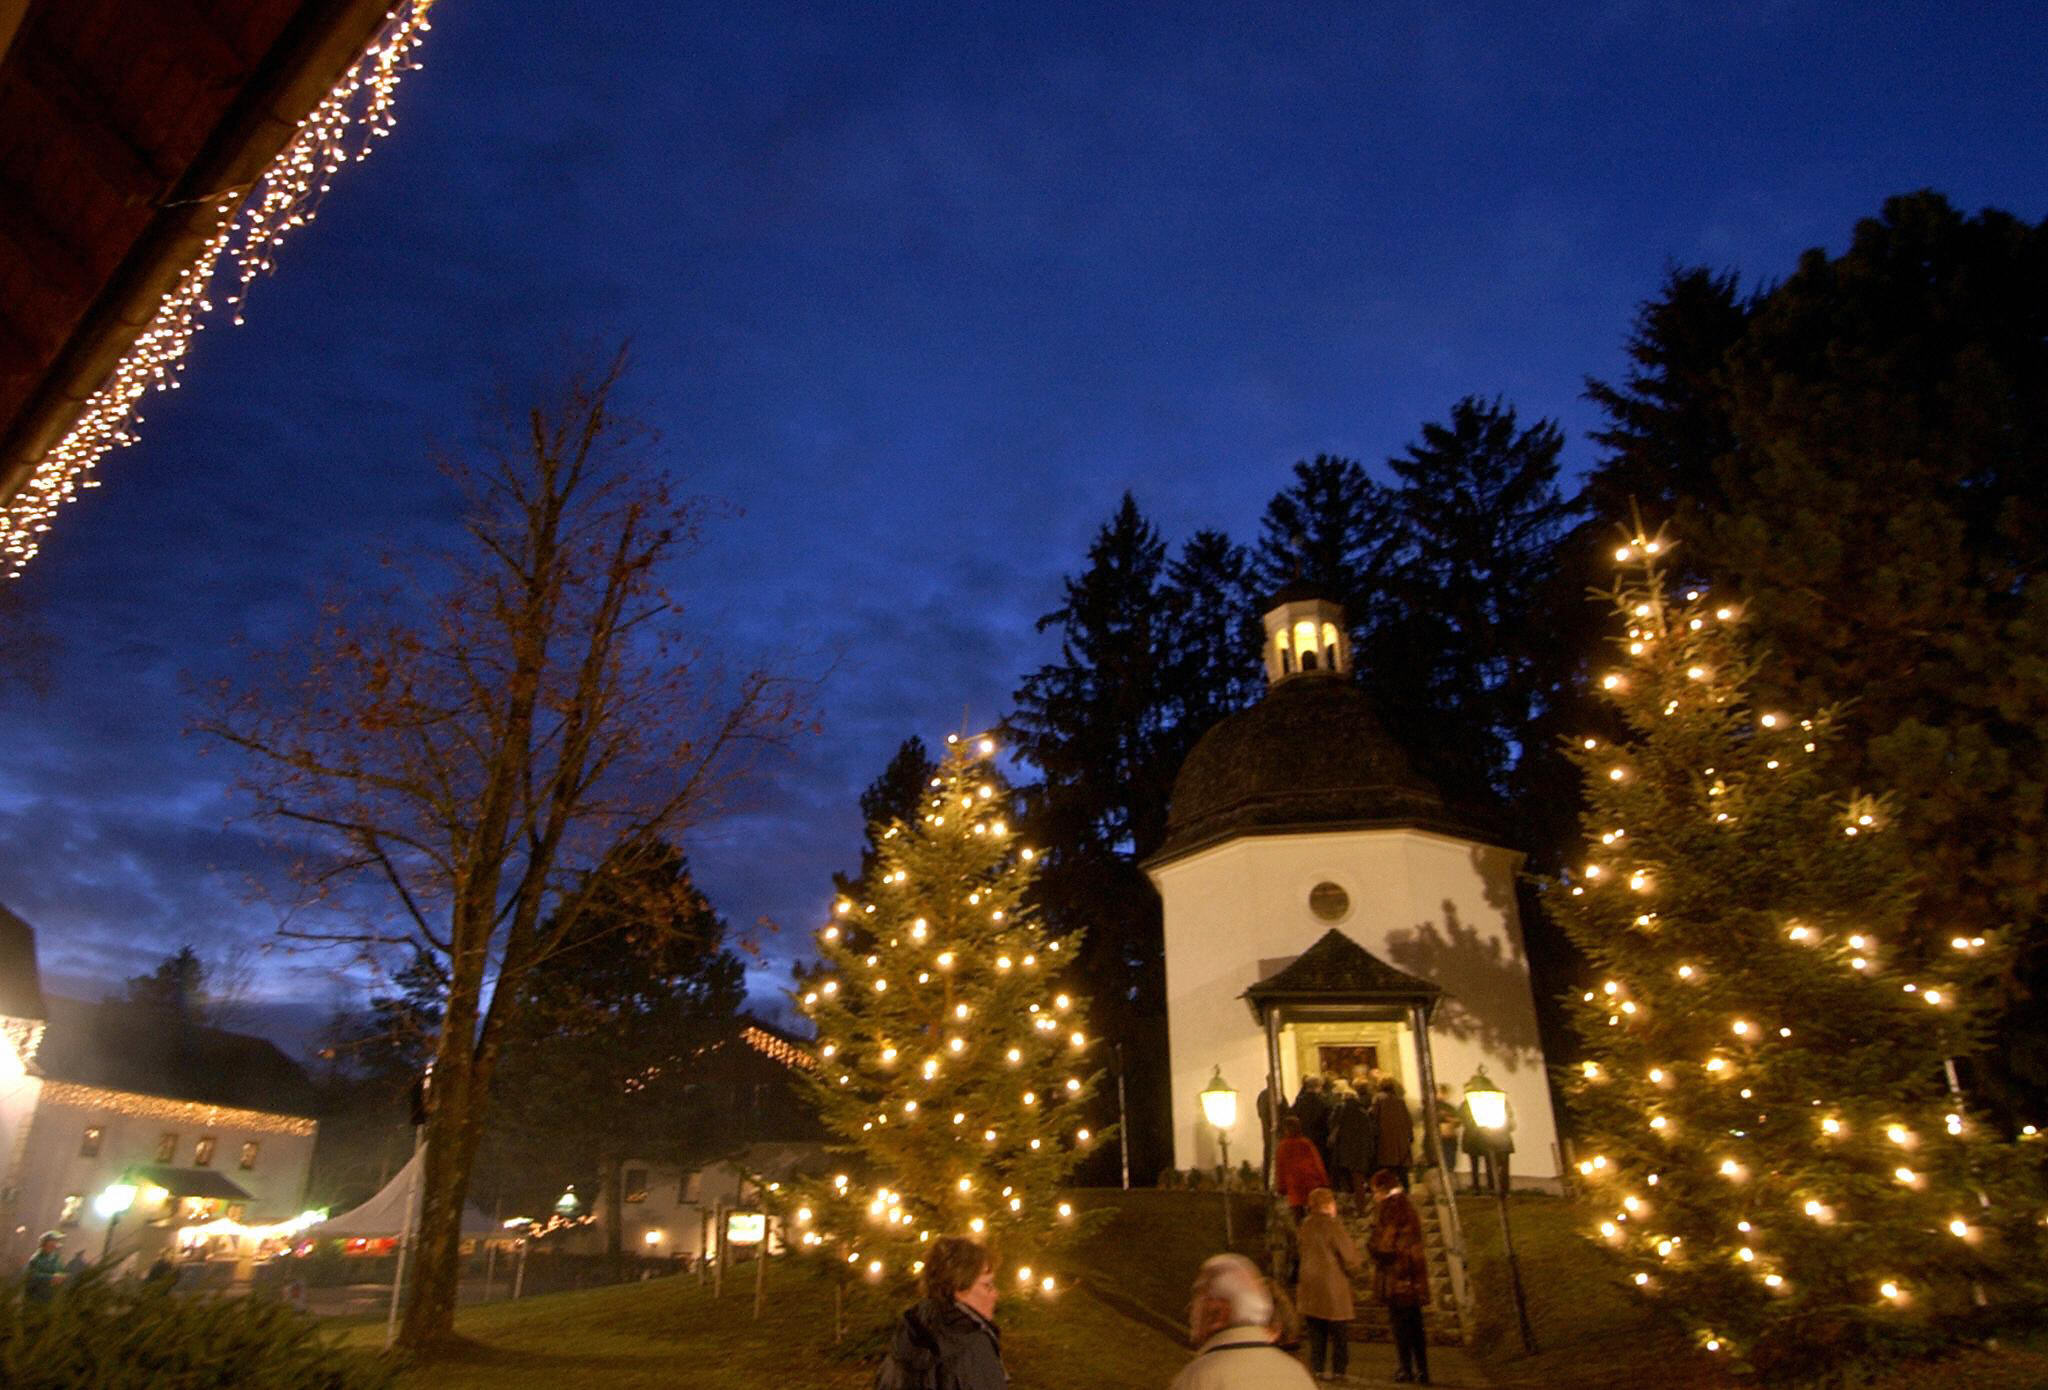 tourists visit the silent night memorial chapel in the austrian village of oberndorf on dec - What Time Is Walmart Closing On Christmas Eve